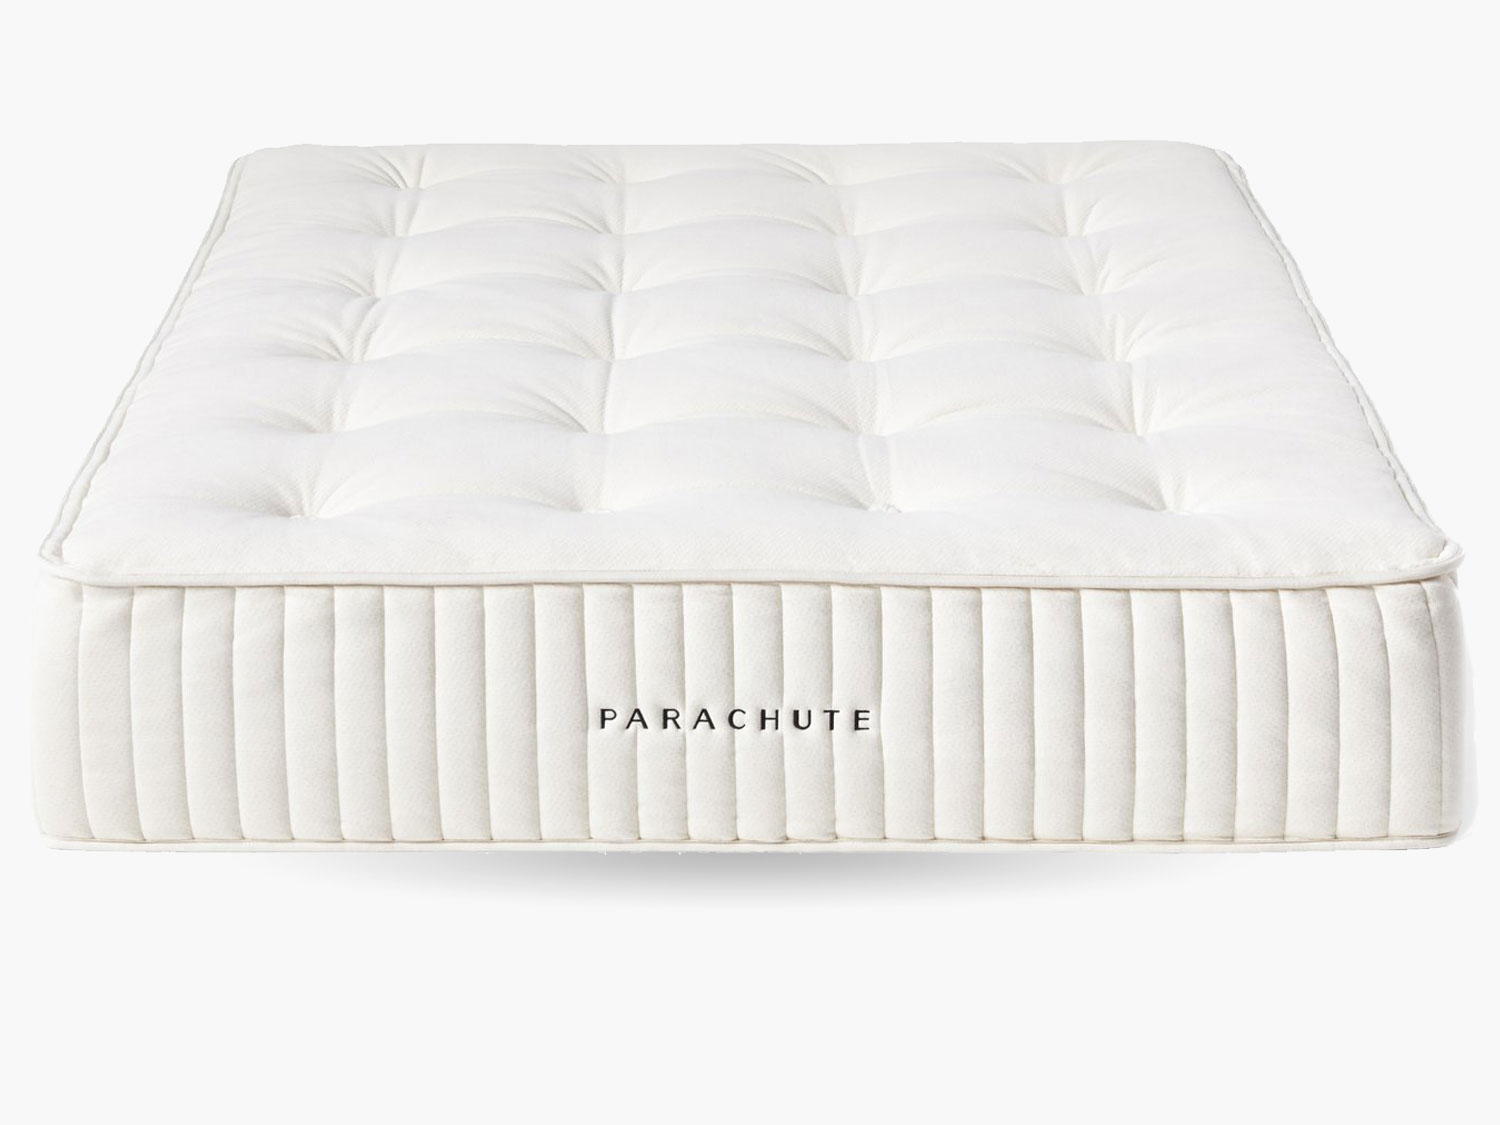 Parachute Mattress  is hand made in the USA and includes White Glove Delivery